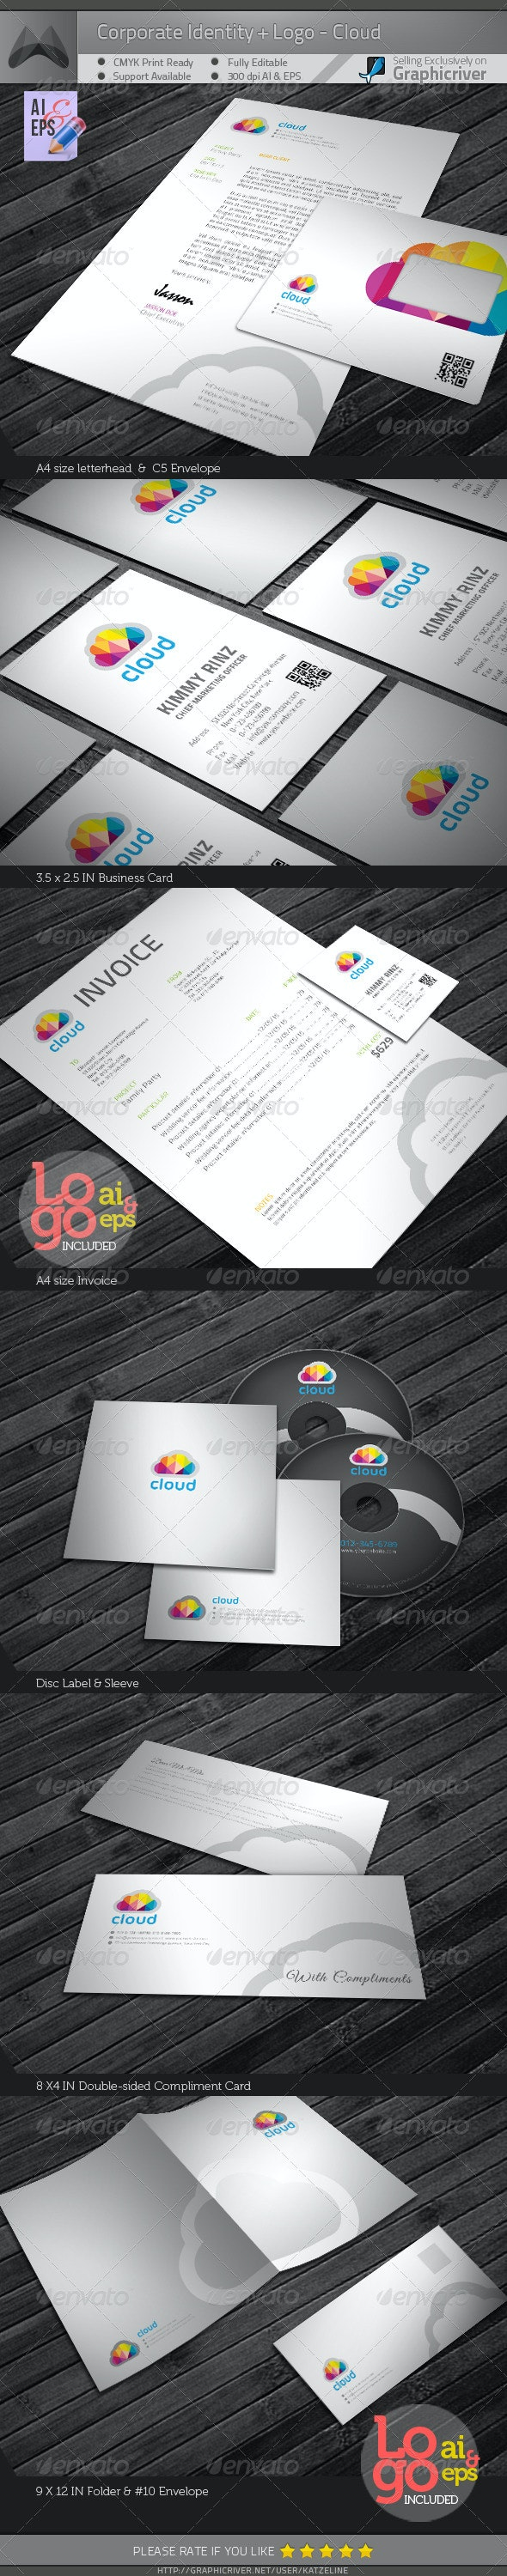 Corporate Identity Package - Cloud - Stationery Print Templates